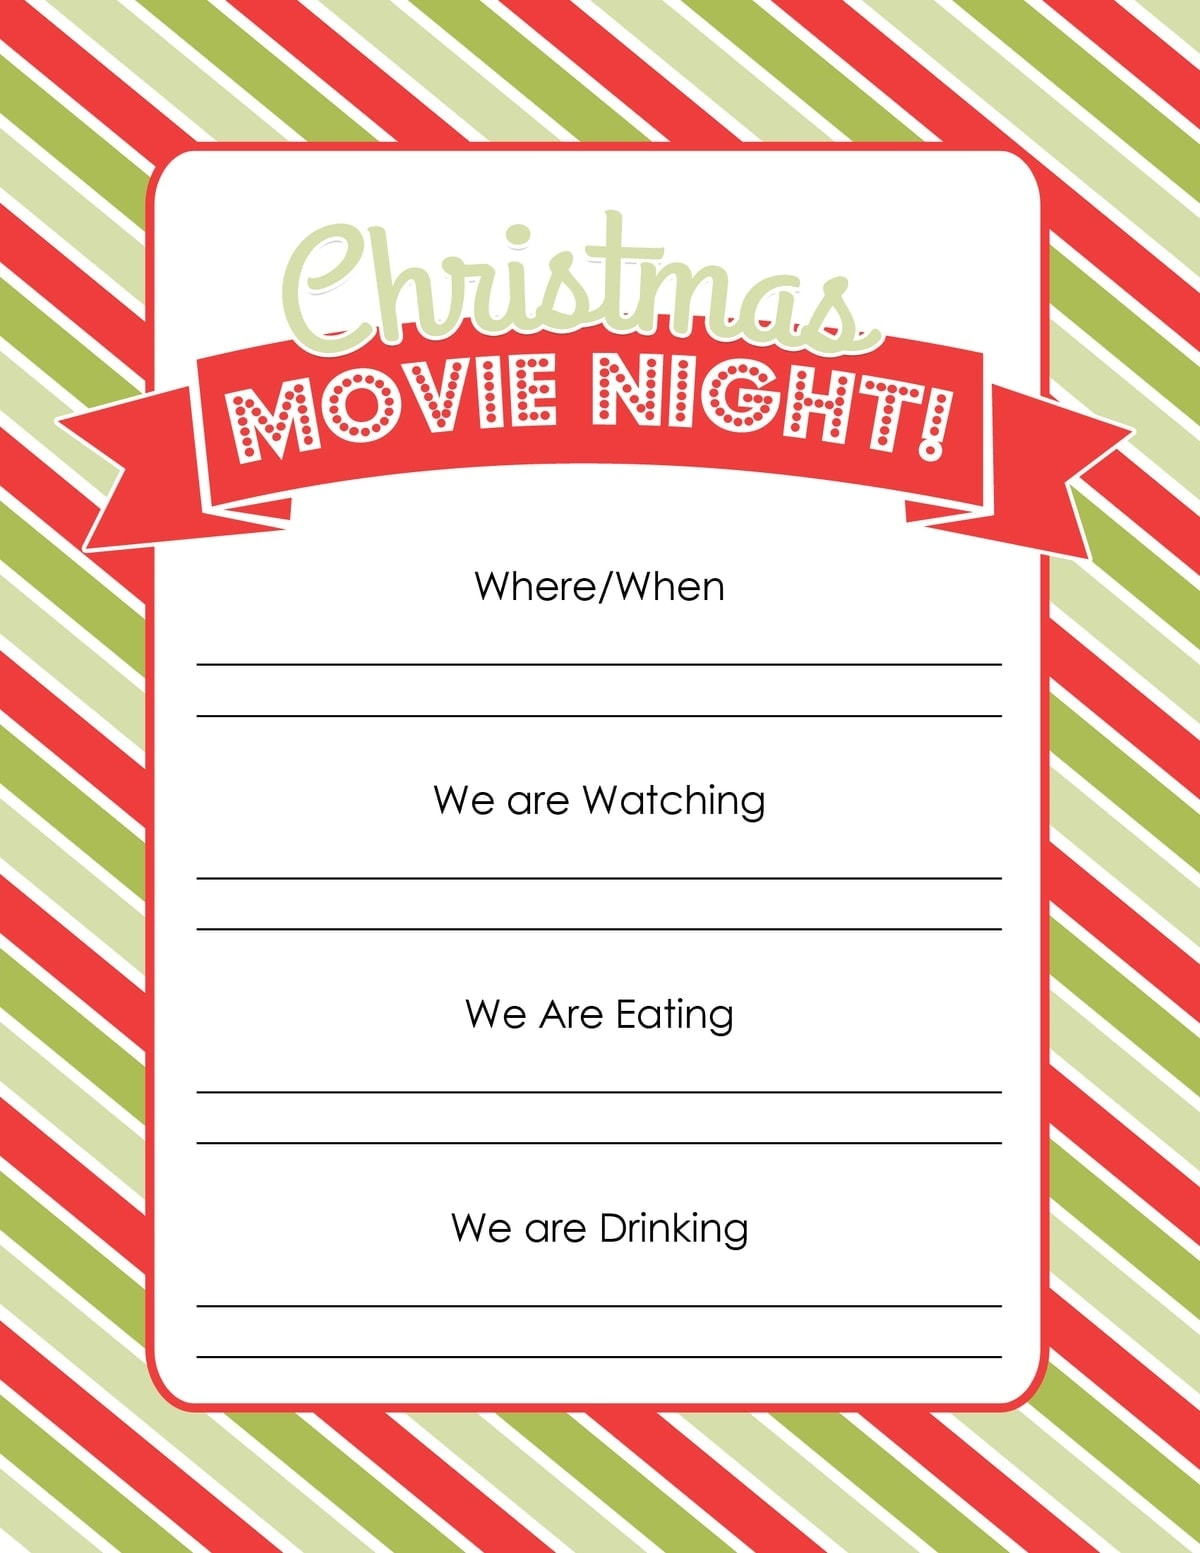 holiday traditions christmas movie night free printable santa checking his list clipart santa's nice list clip art